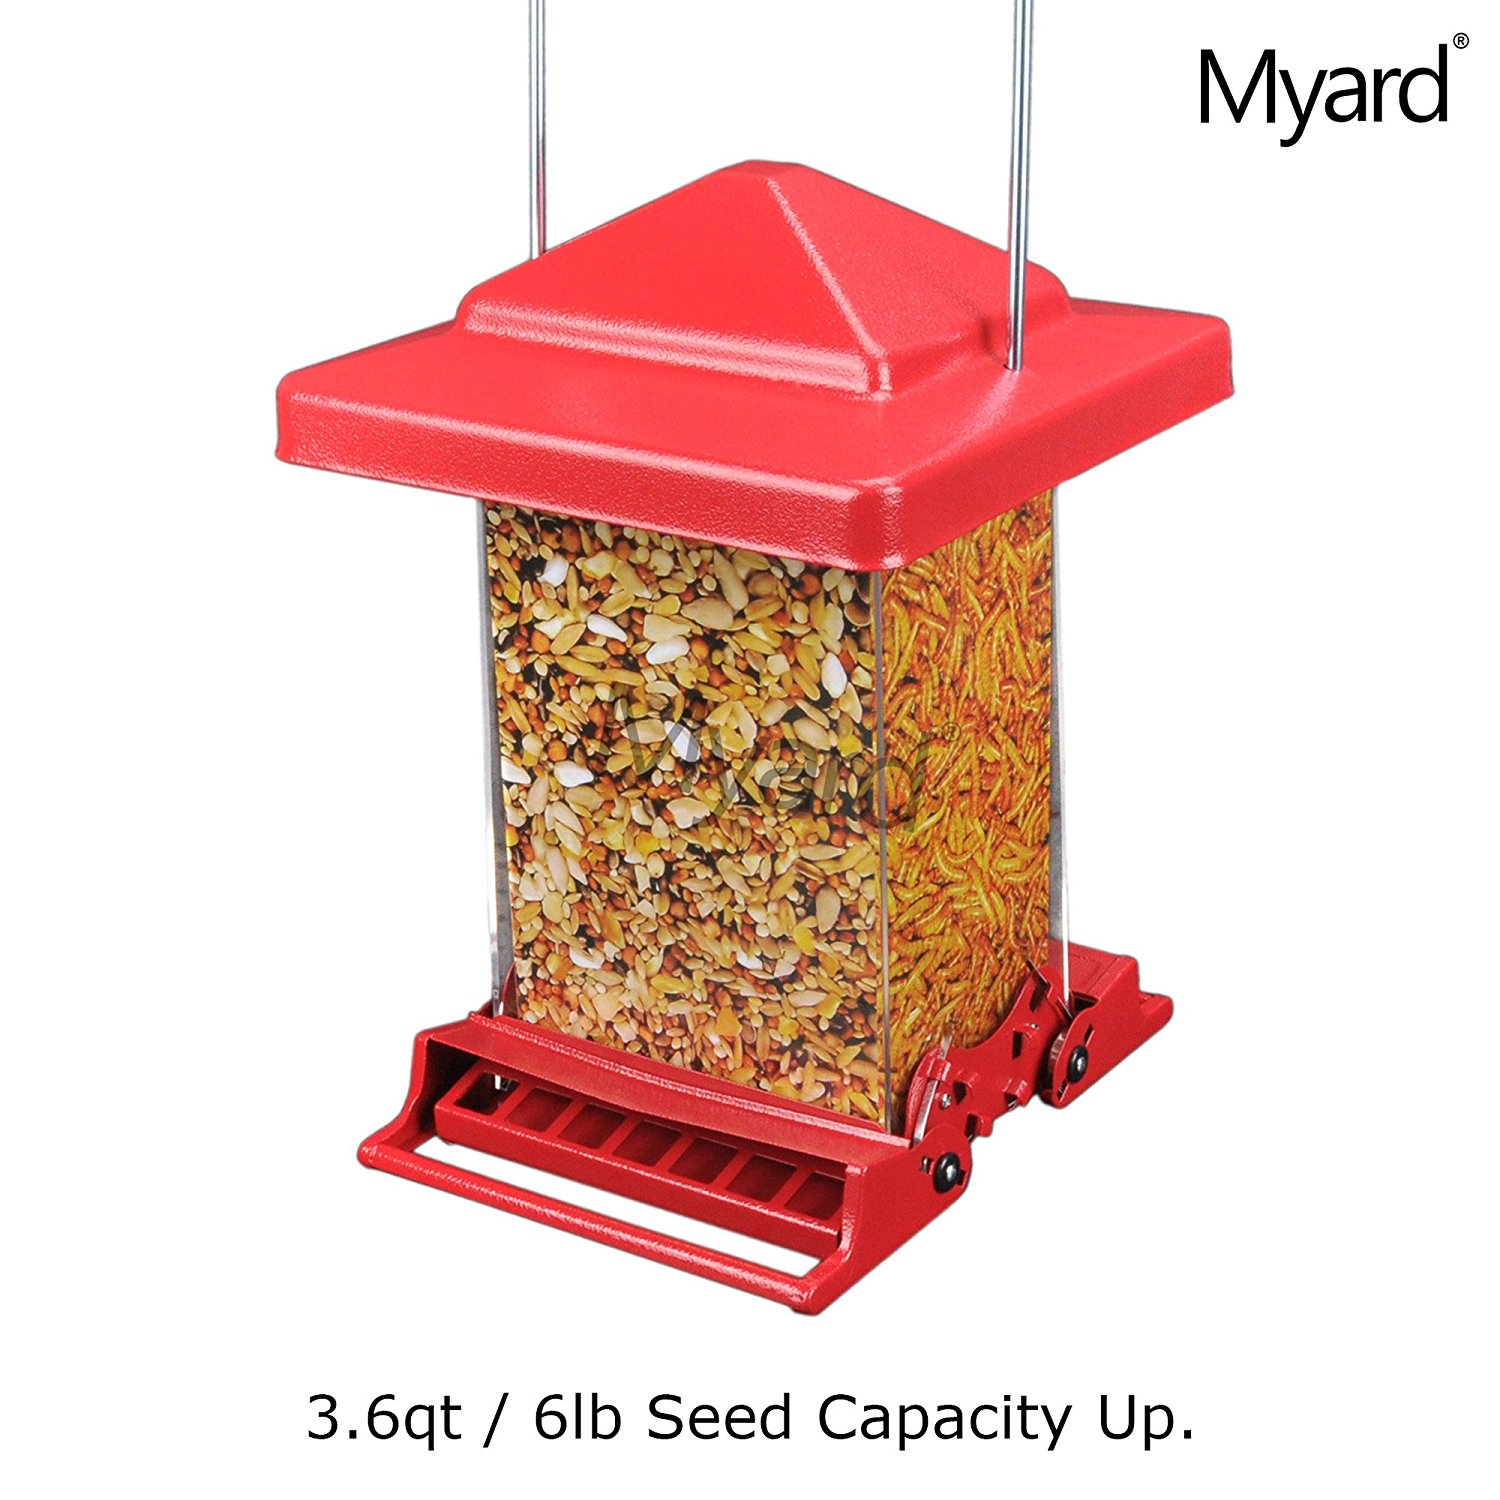 Top 10 Best Squirrel Proof Bird Feeders in 2018